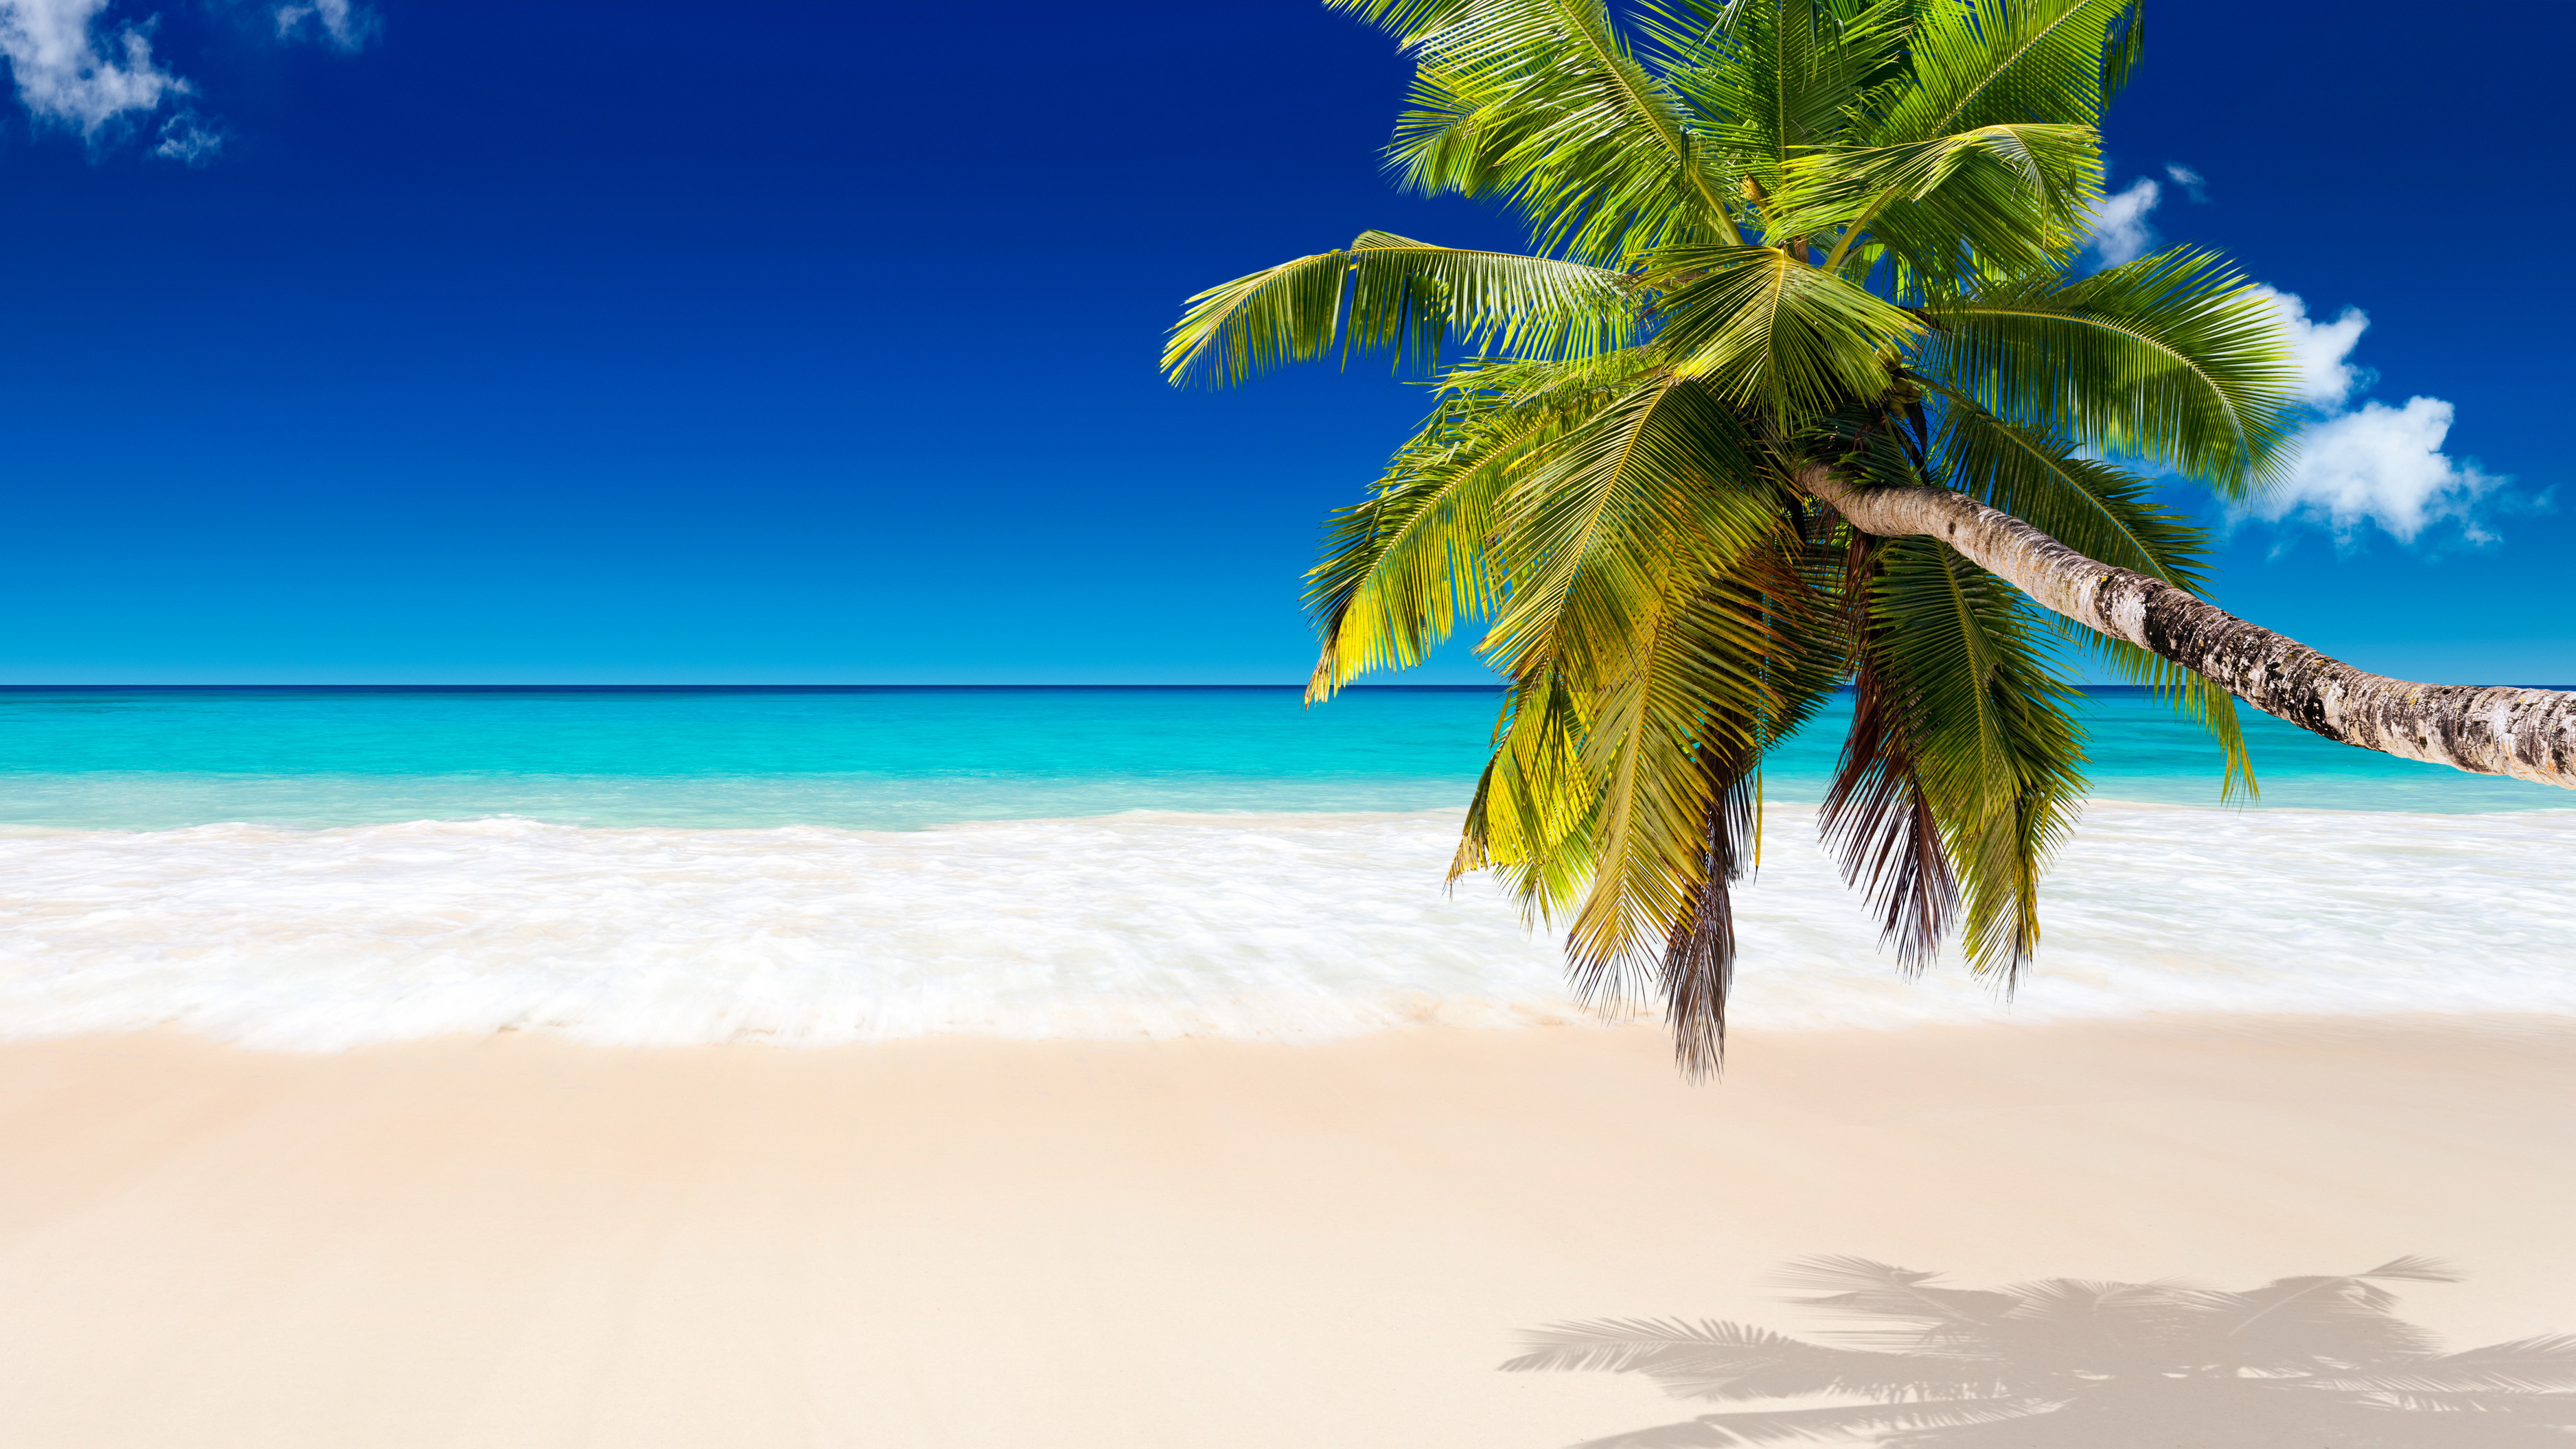 Tropical Beach Background (64+ Images